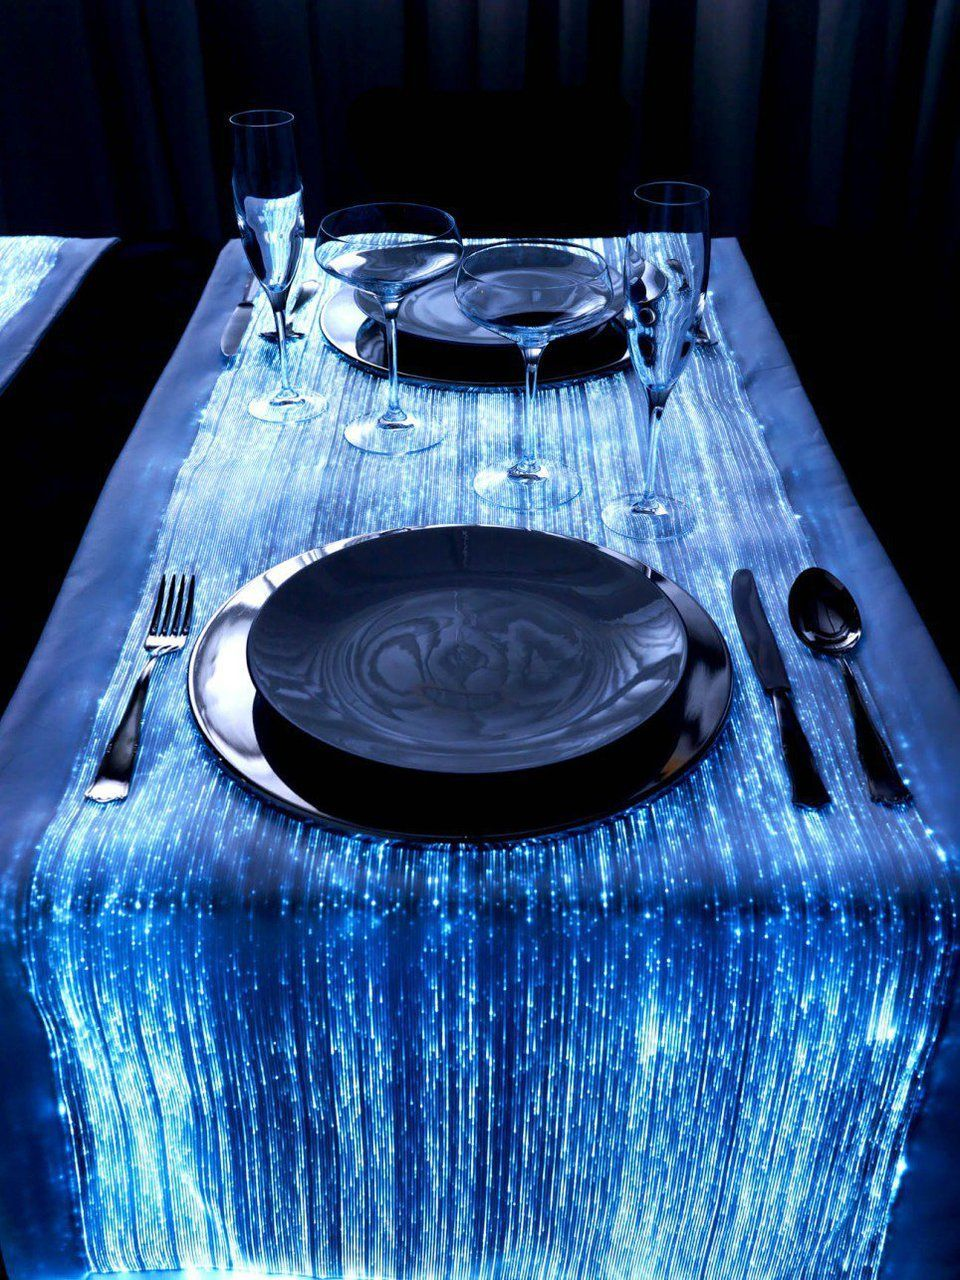 Design Fiber Optic Table Runner Dengan Gambar Dekorasi